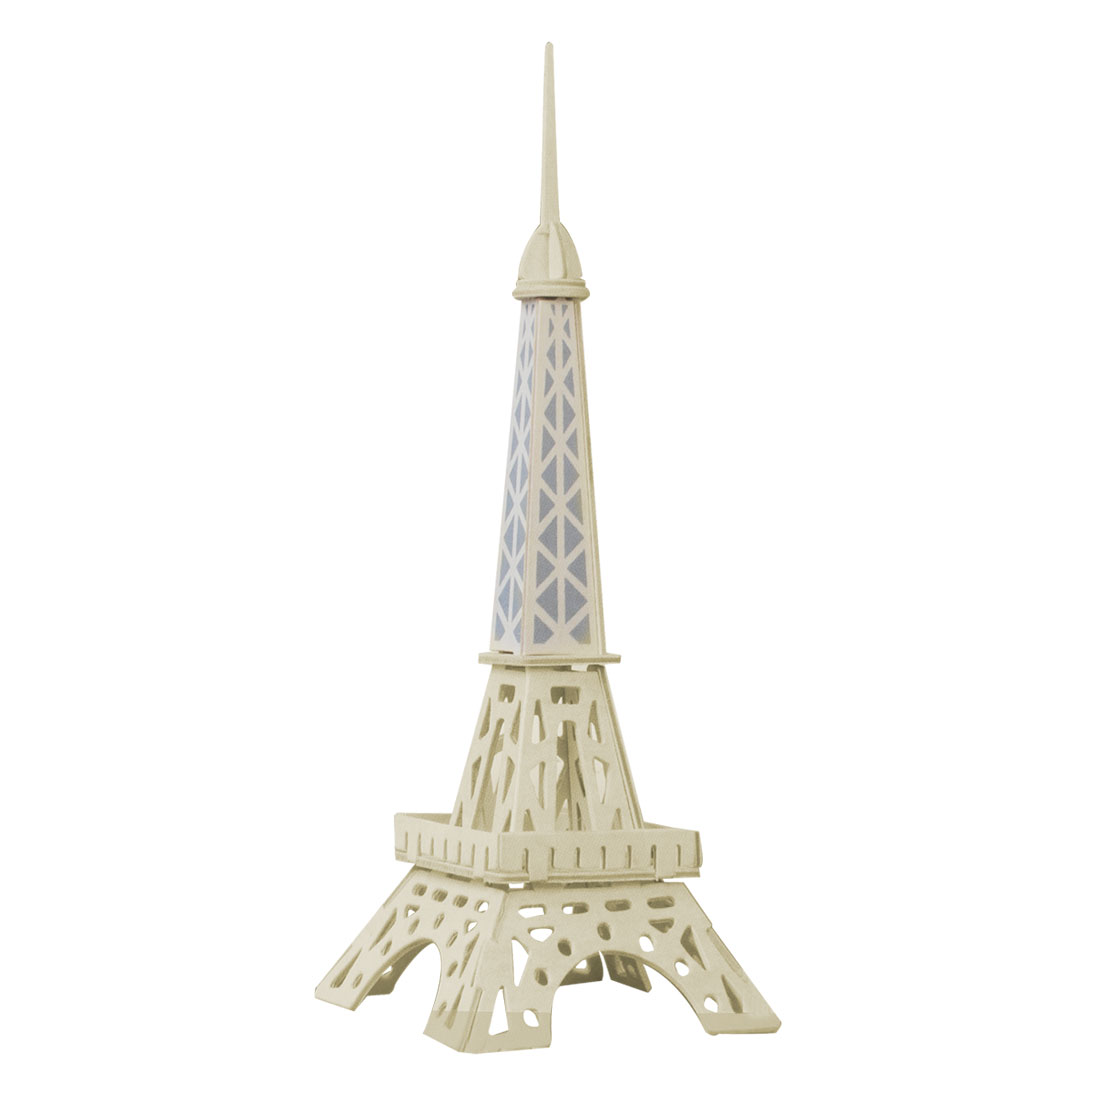 Woodcraft Eiffel Tower Model Educational 3D Assemble Puzzle Toy for Kids